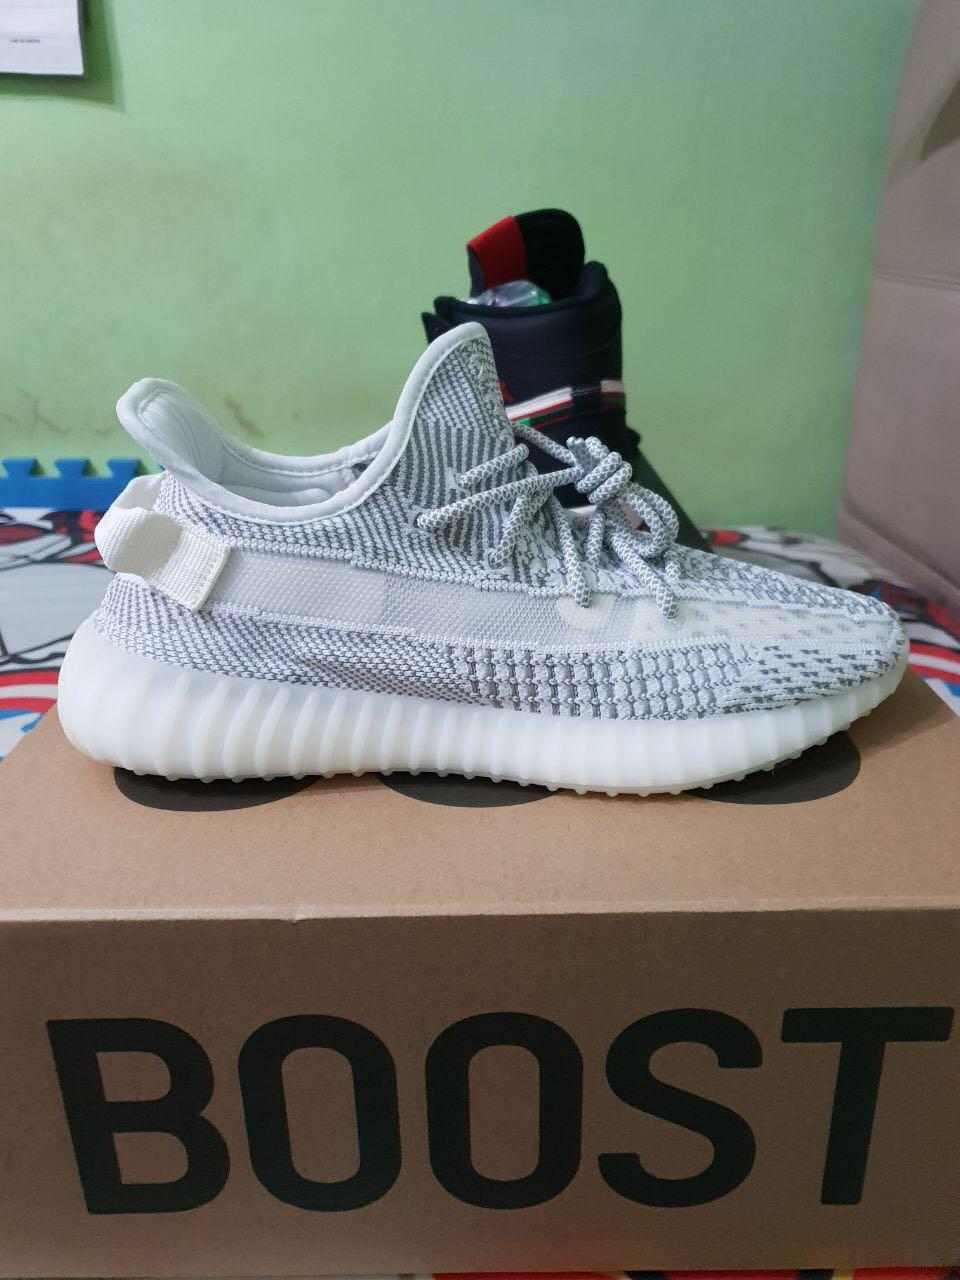 ADIDAS x YEEZY 350 V2 STATIC On Foot Review (Non